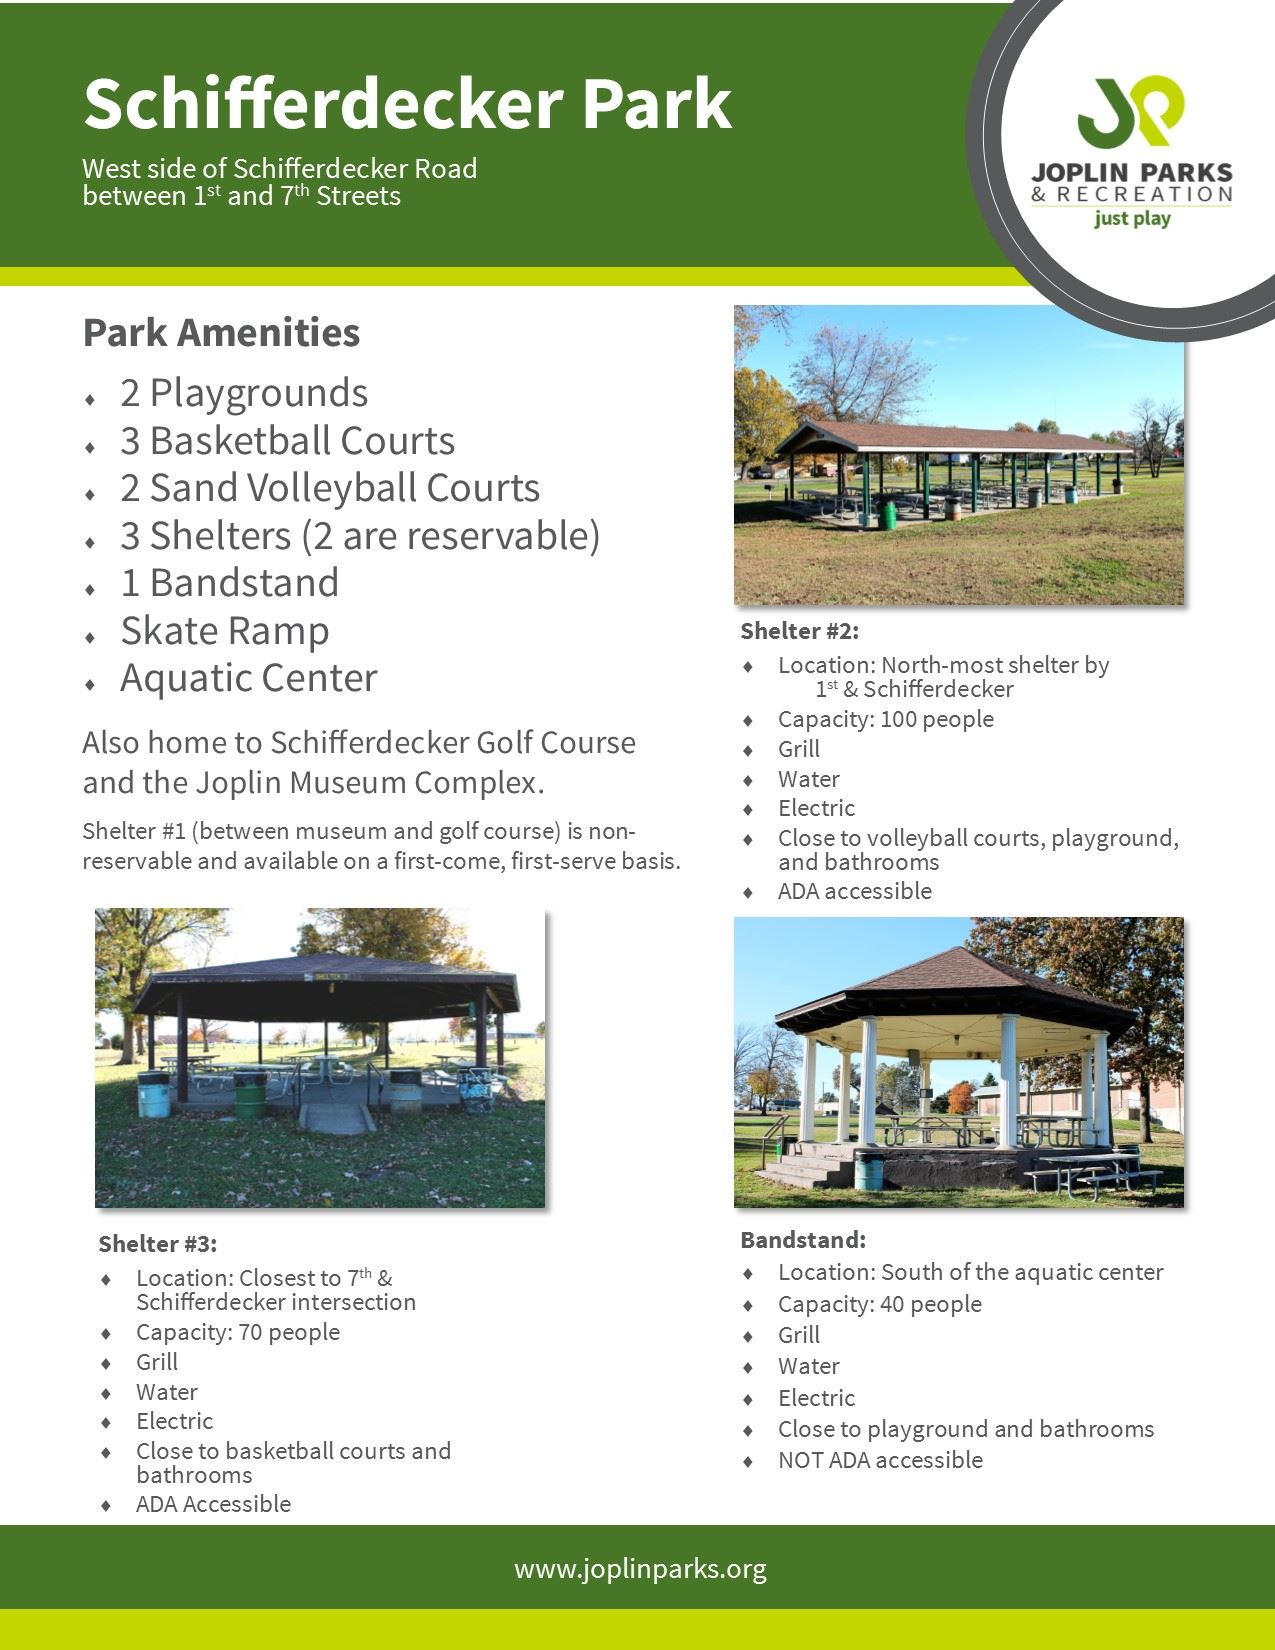 Schifferdecker Park Fact Sheet